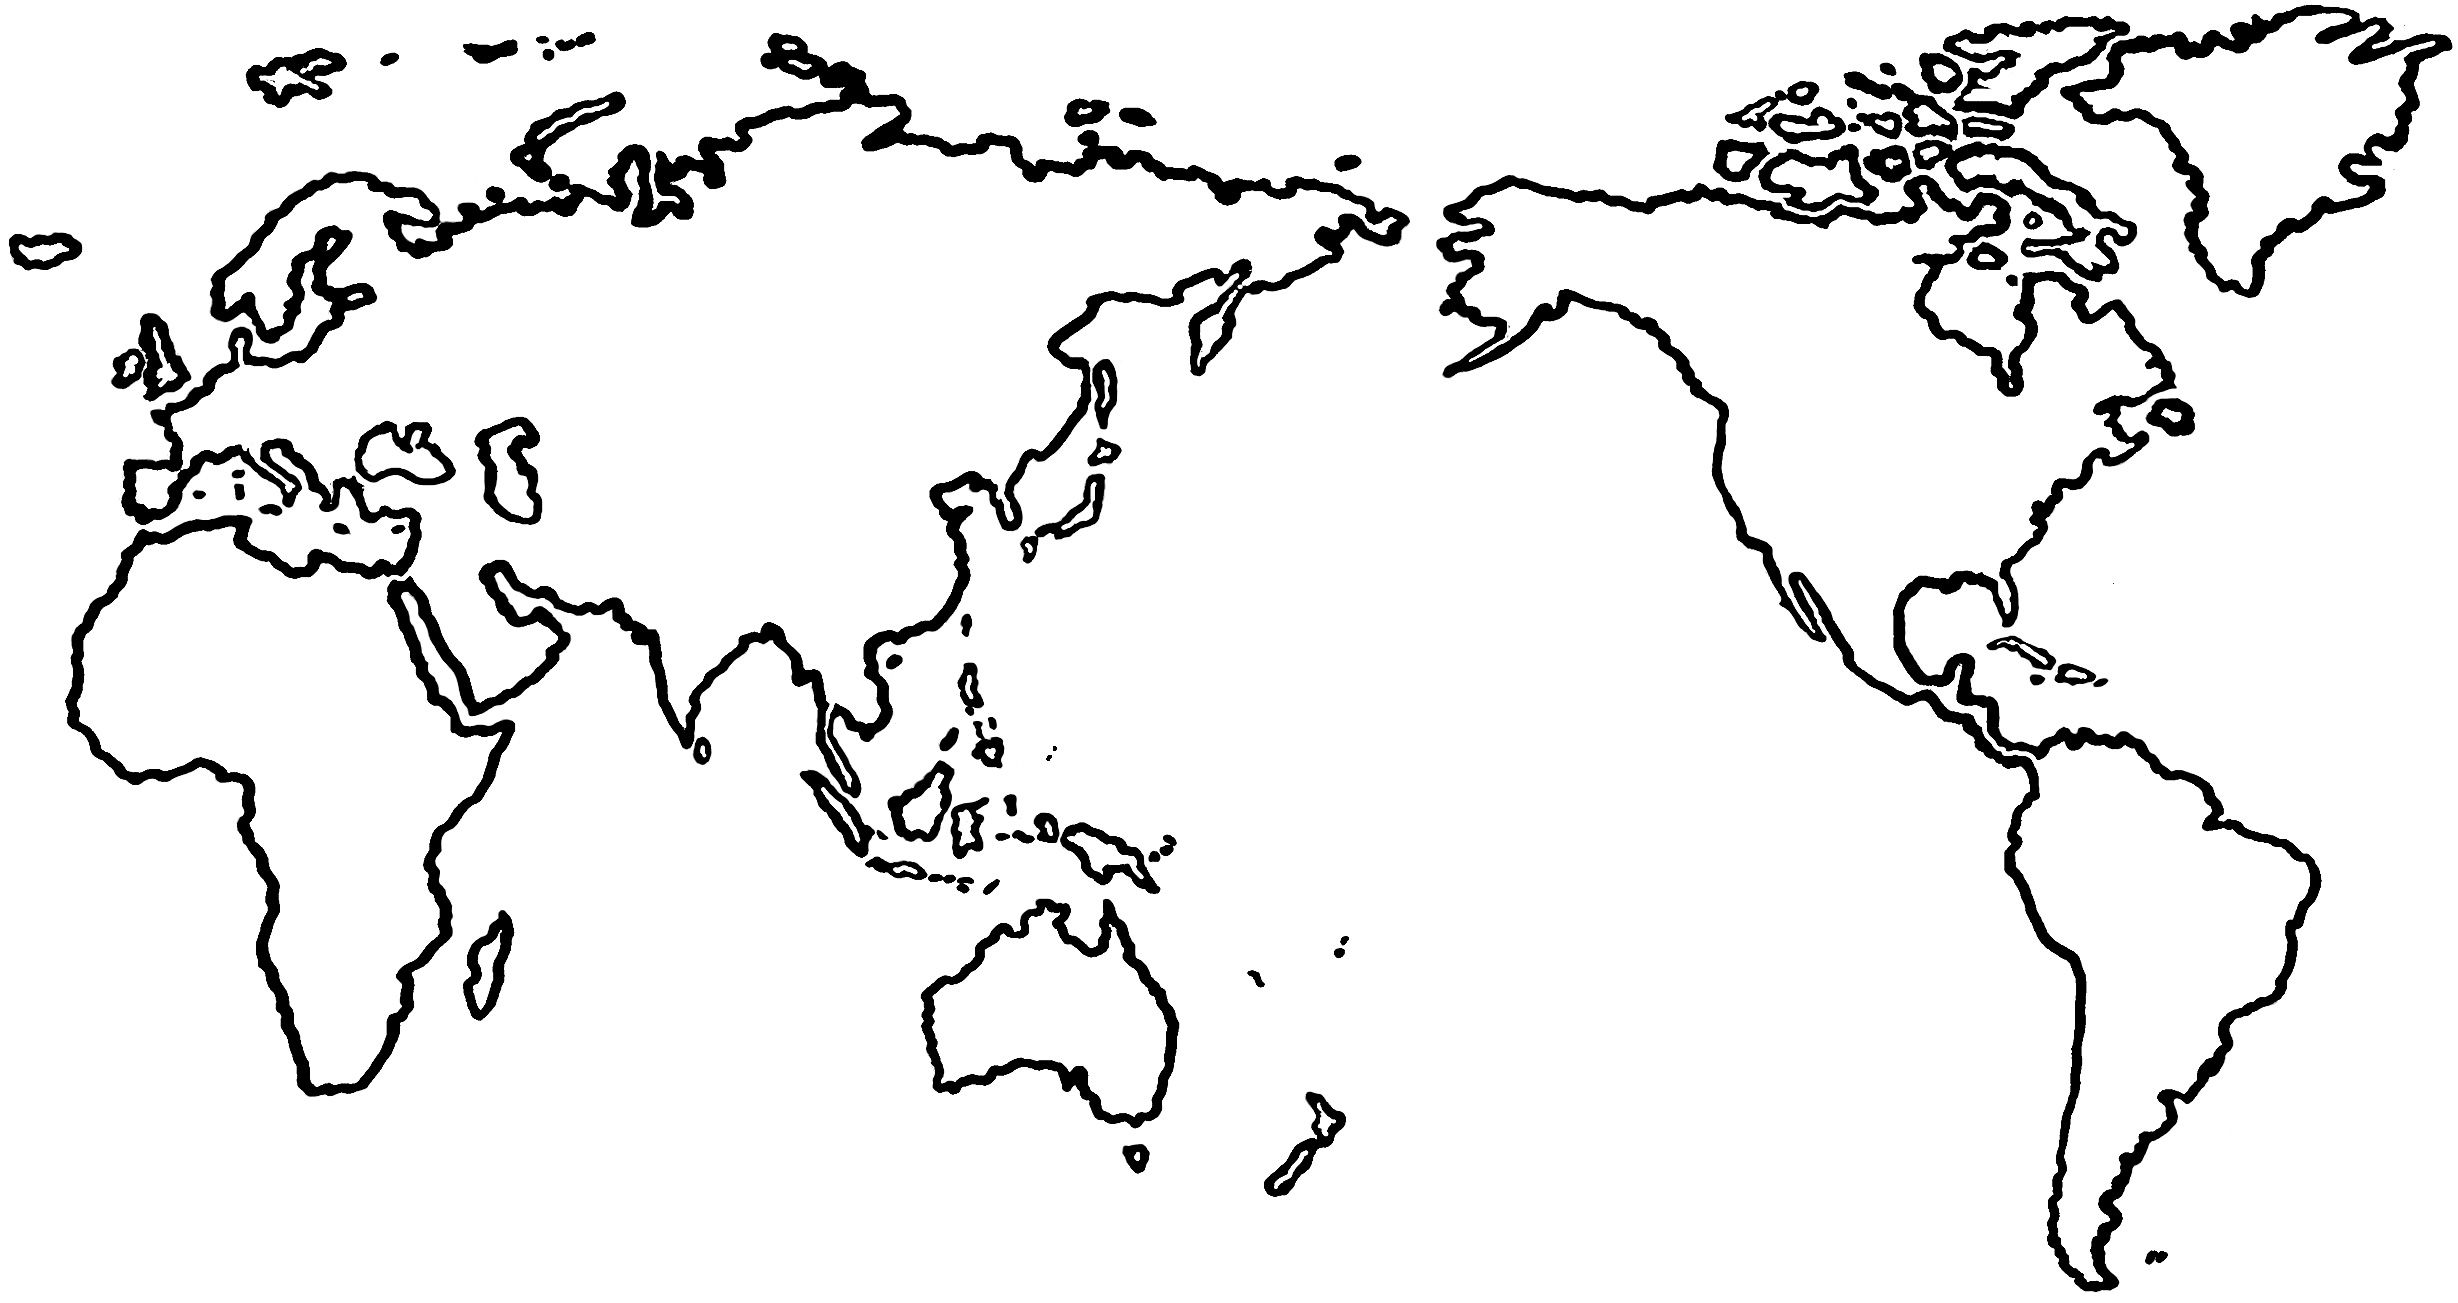 How to draw map of world open this world map template jpeg and how to draw map of world open this world map template jpeg and save it to your disk gumiabroncs Gallery